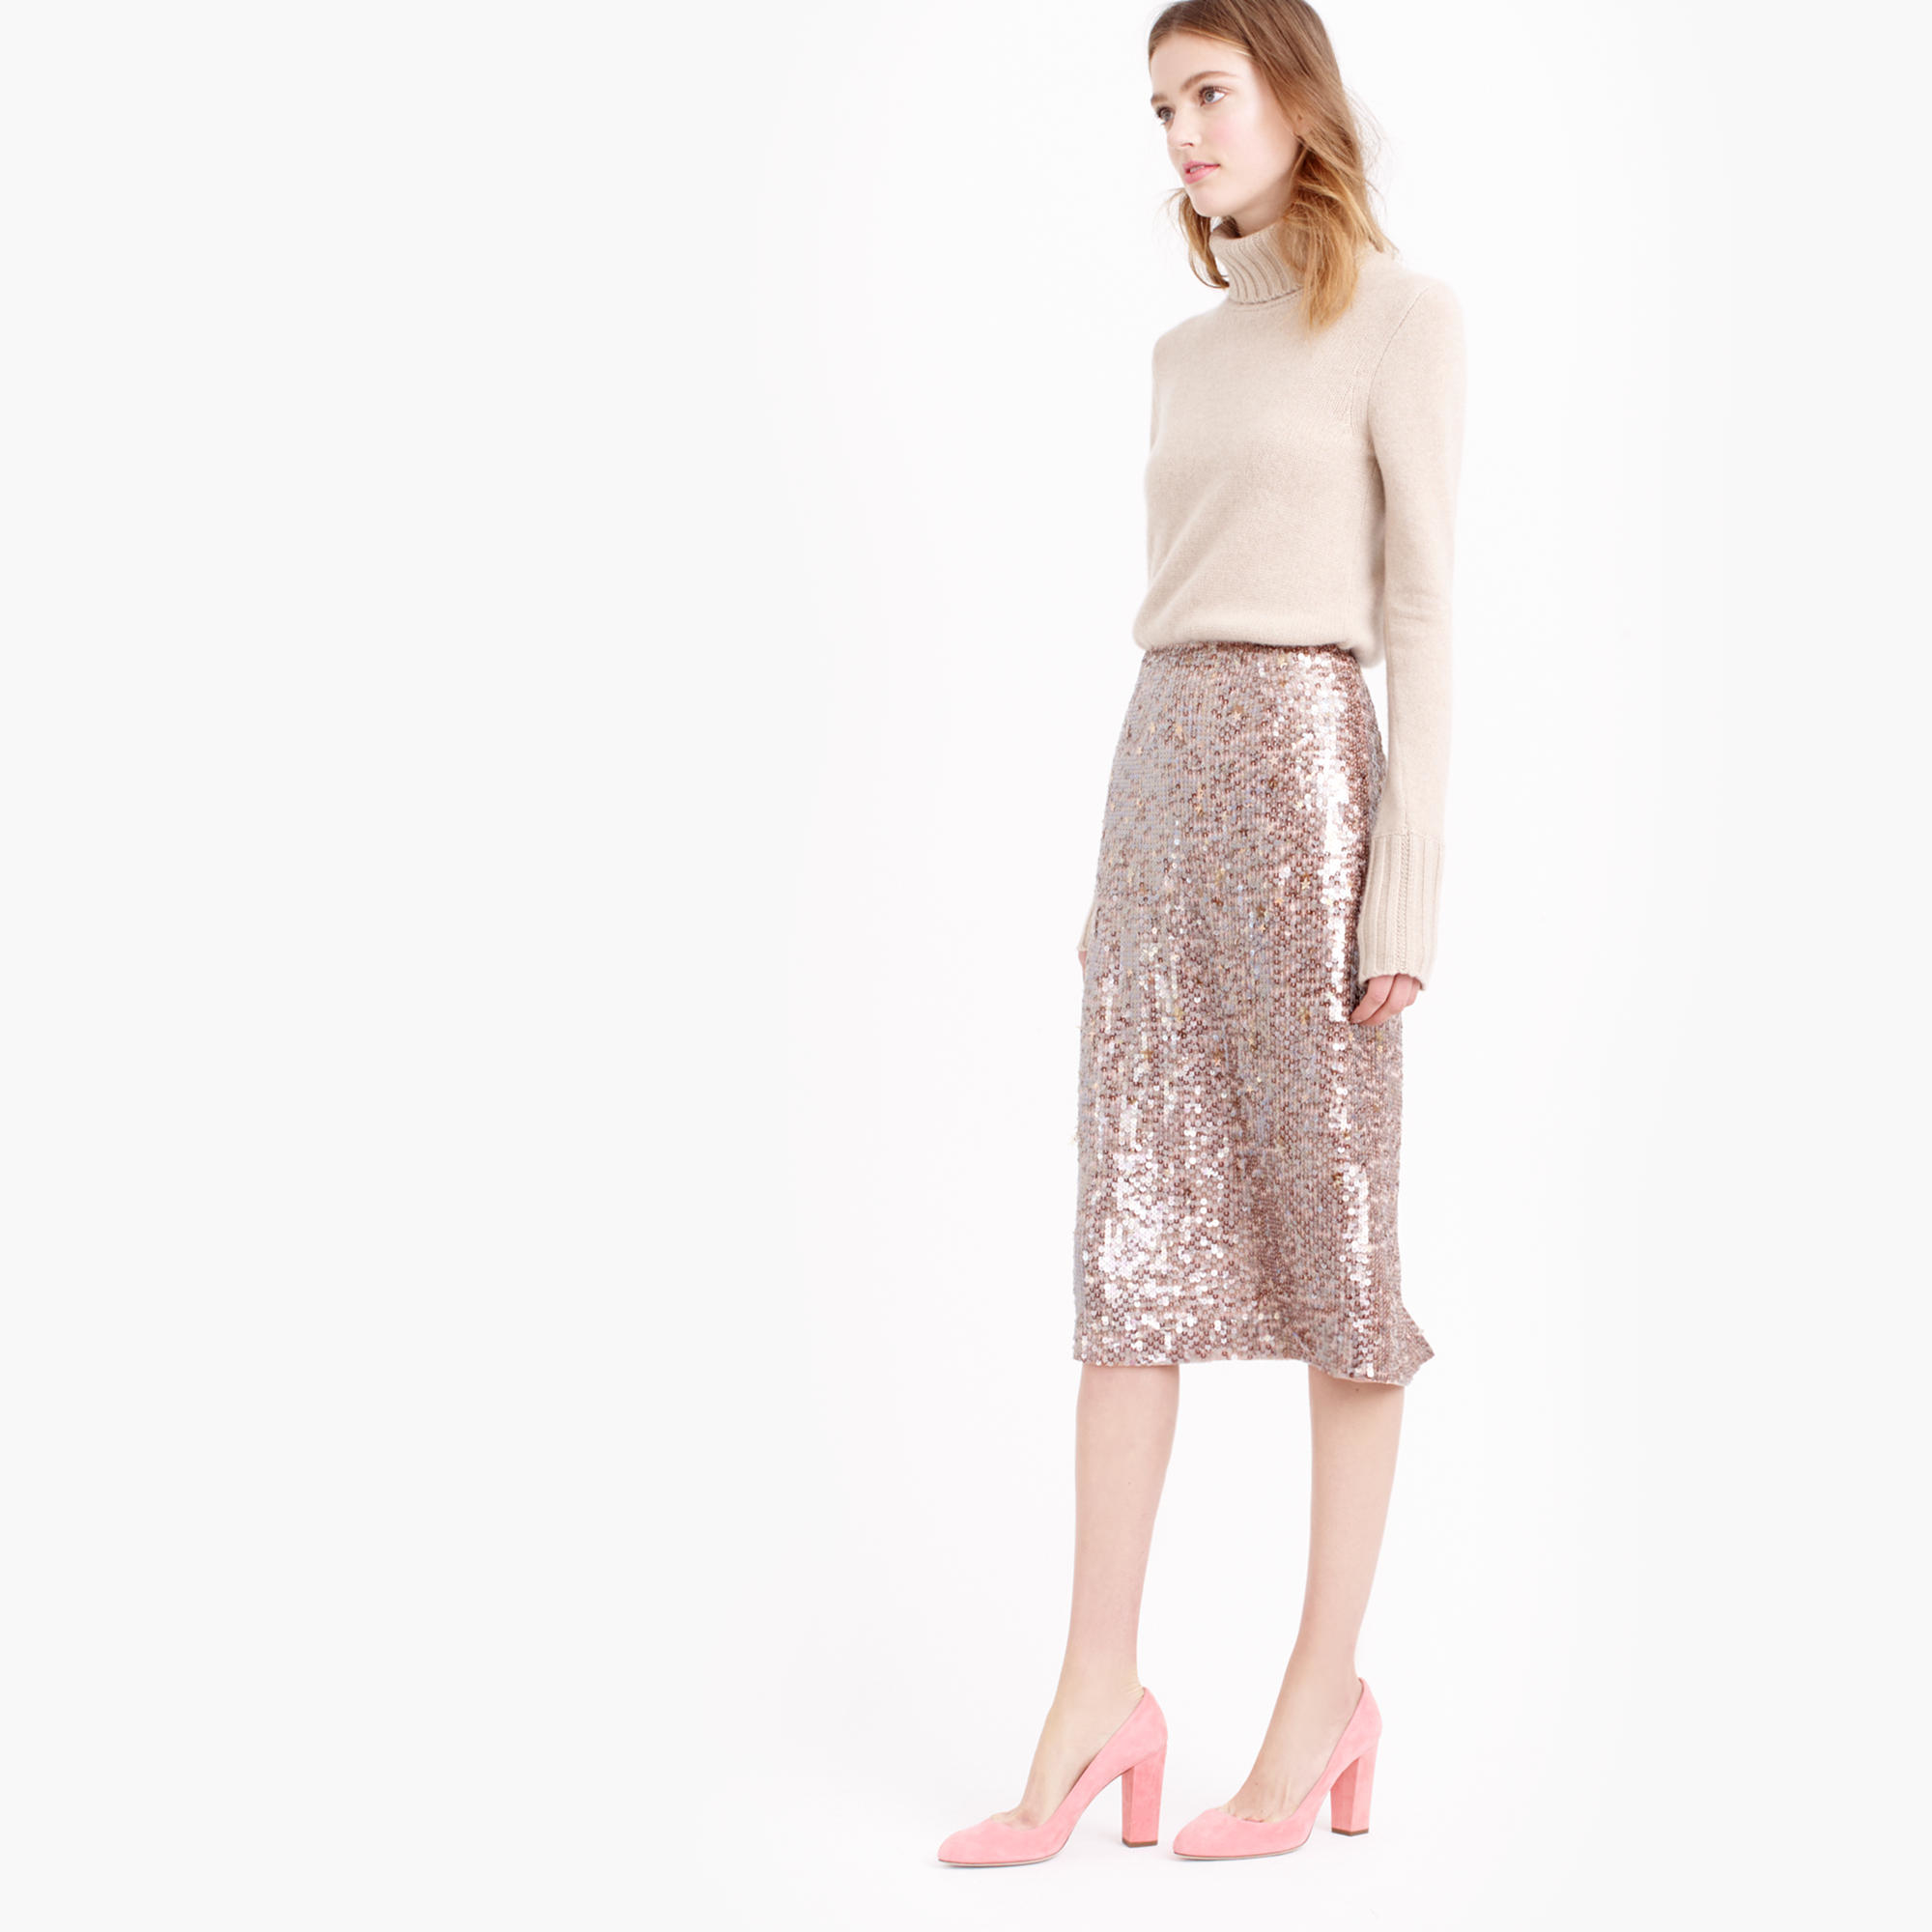 J.crew Collection Starry Sequin Pencil Skirt in Pink | Lyst